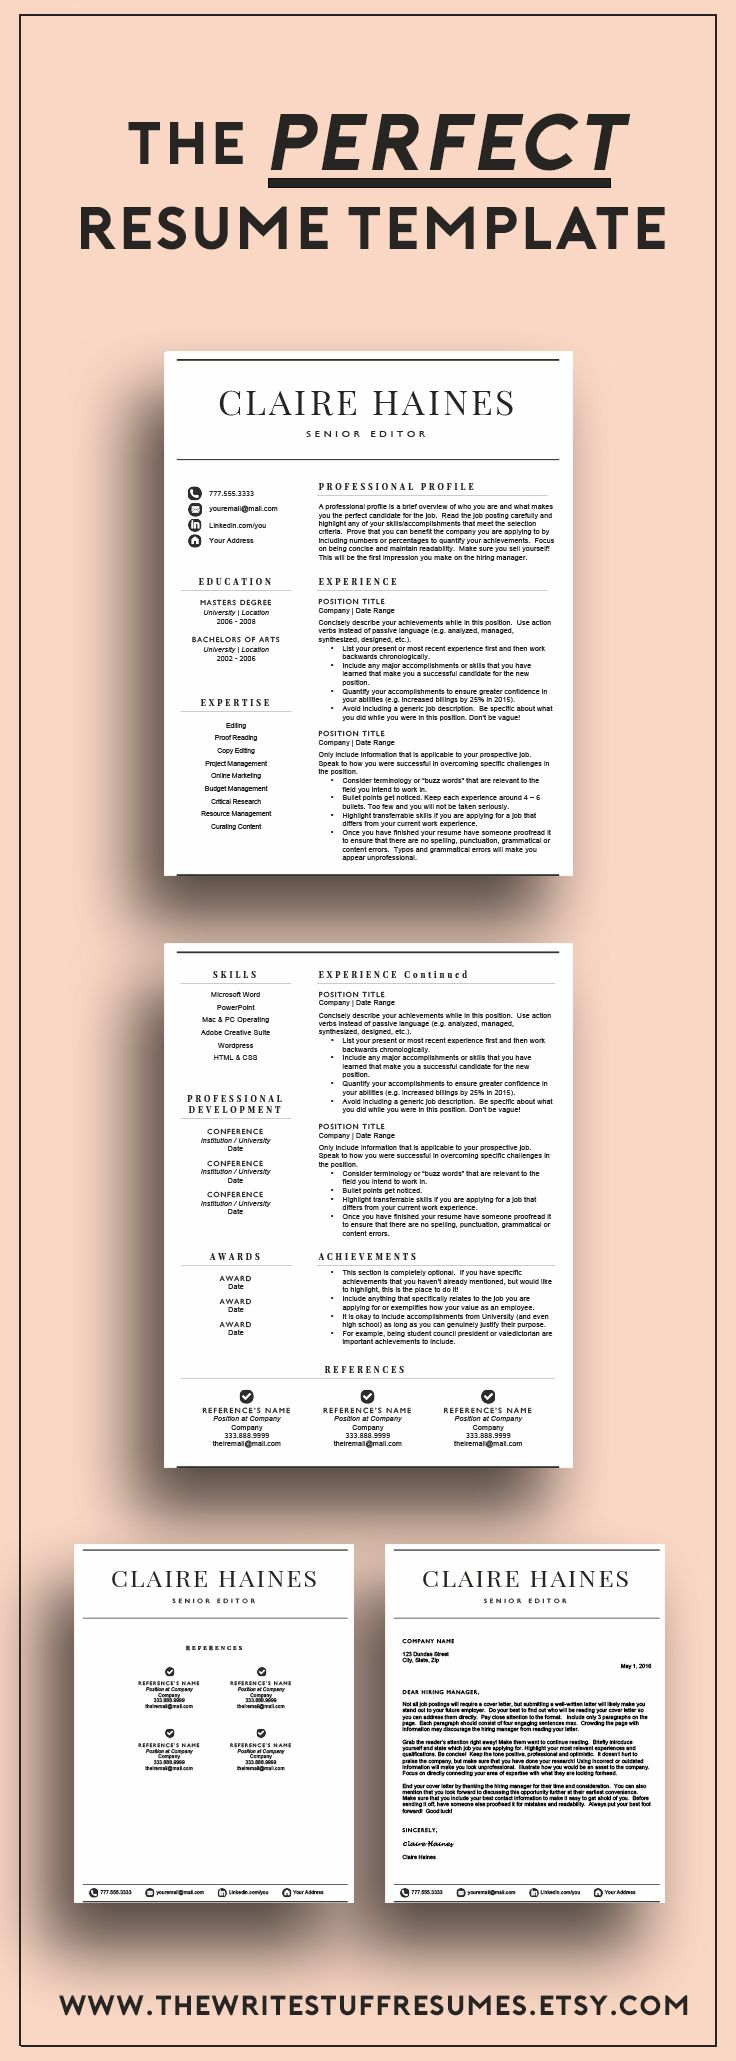 Best $15.00 ever spent!  Upgrade your generic CV with a professionally designed resume template guaranteed to make you stand out from the competition!  www.thewritestuffresumes.etsy.com